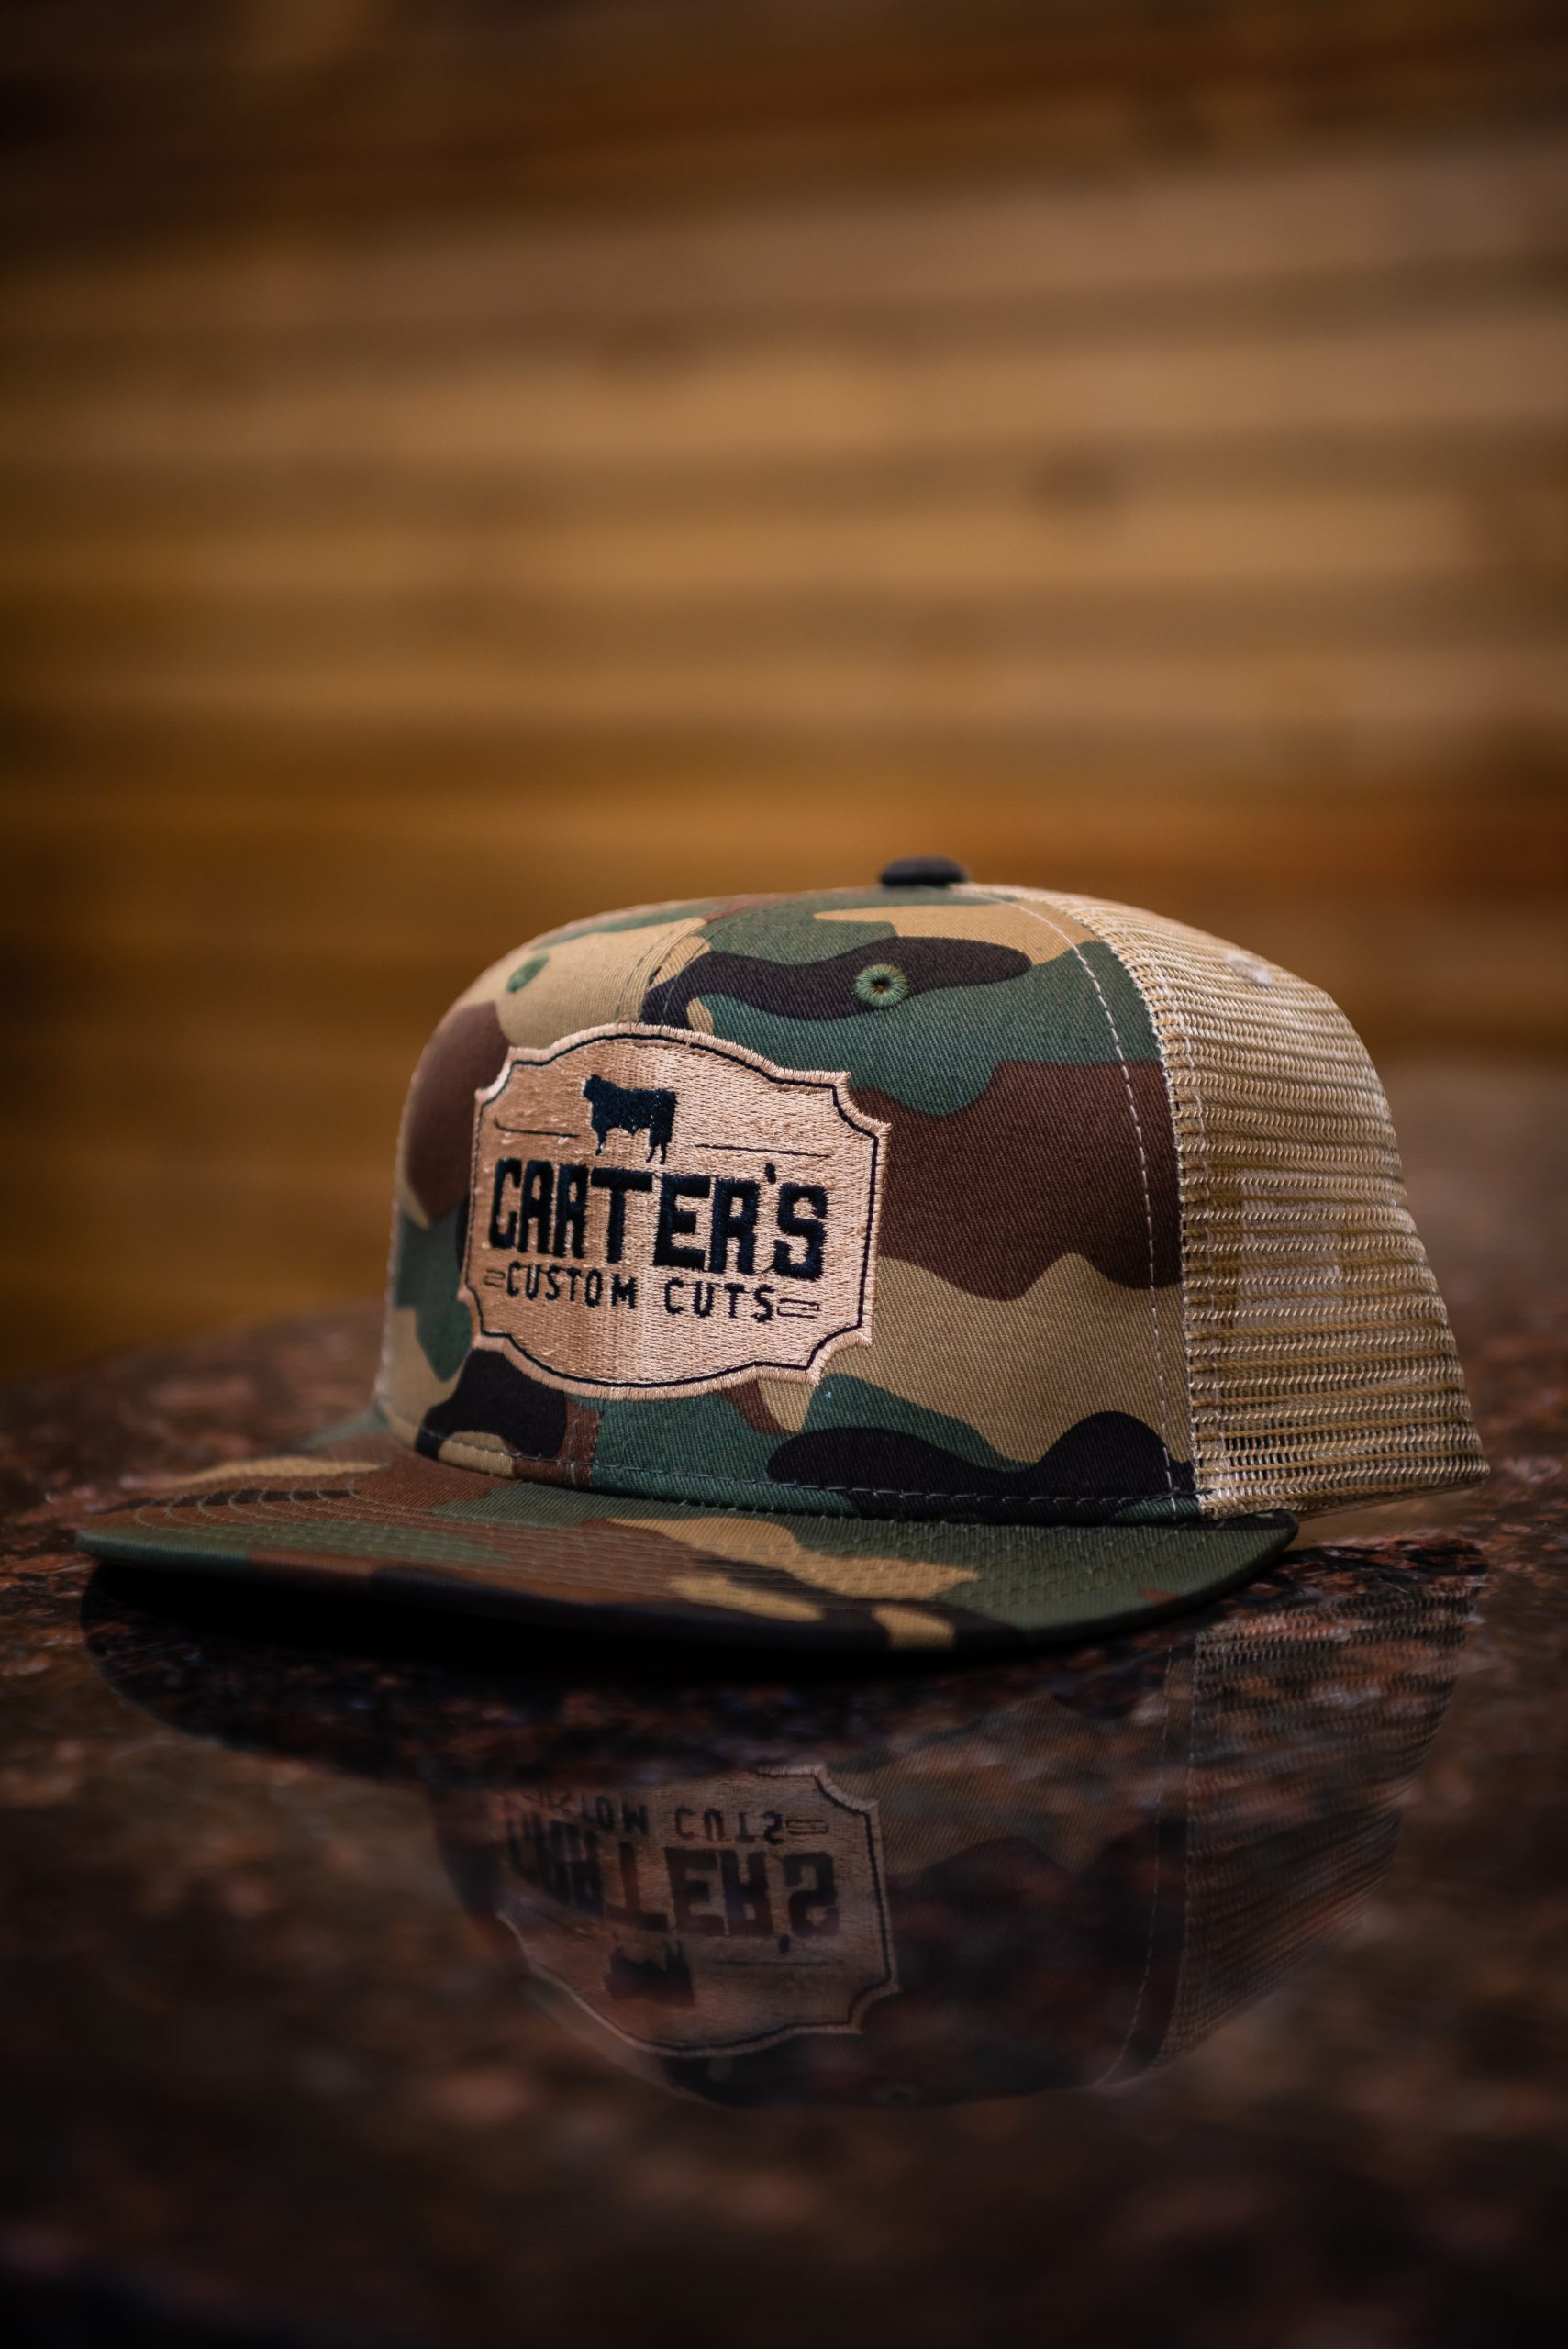 carters-custom-cuts-8_30485859038_o